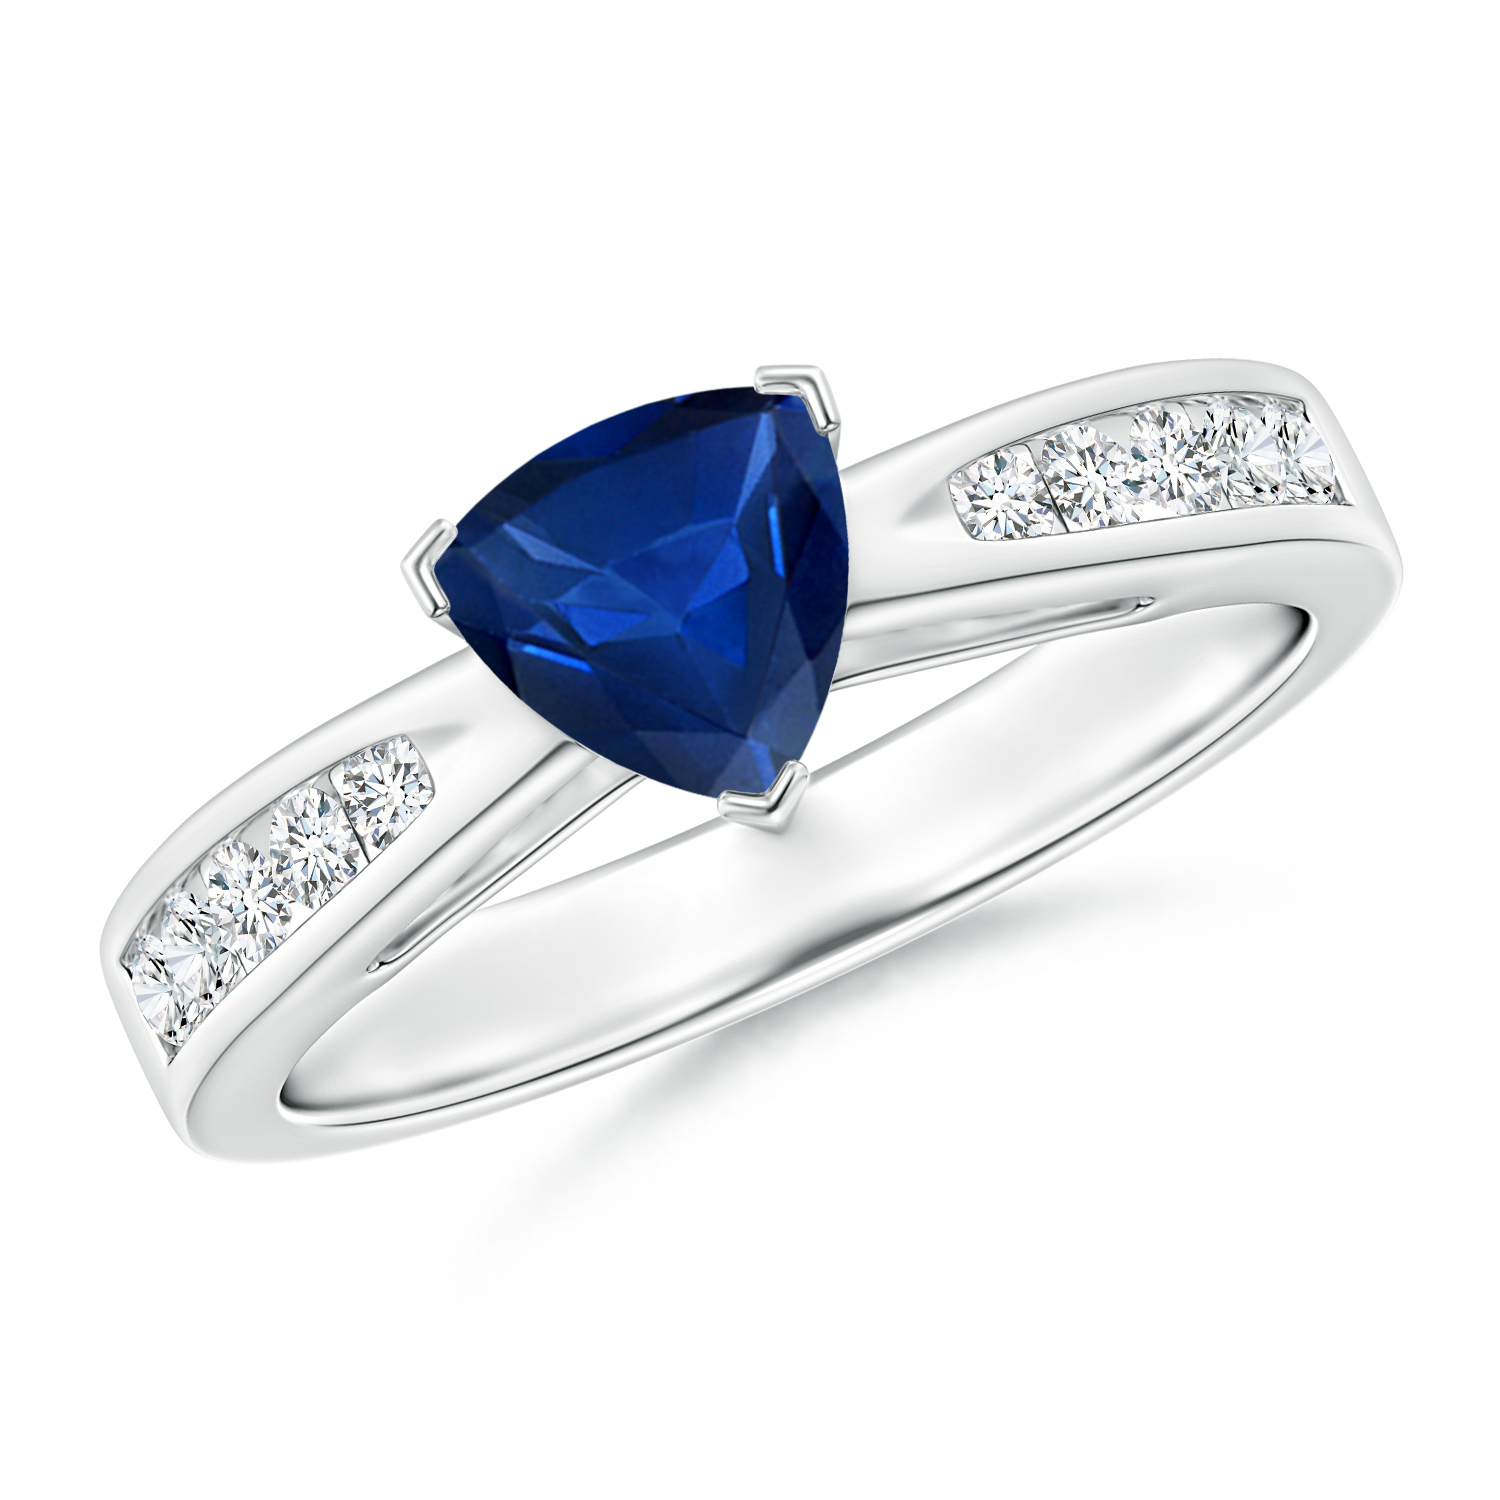 Trillion Blue Sapphire Solitaire Ring with Diamond Accents - Angara.com